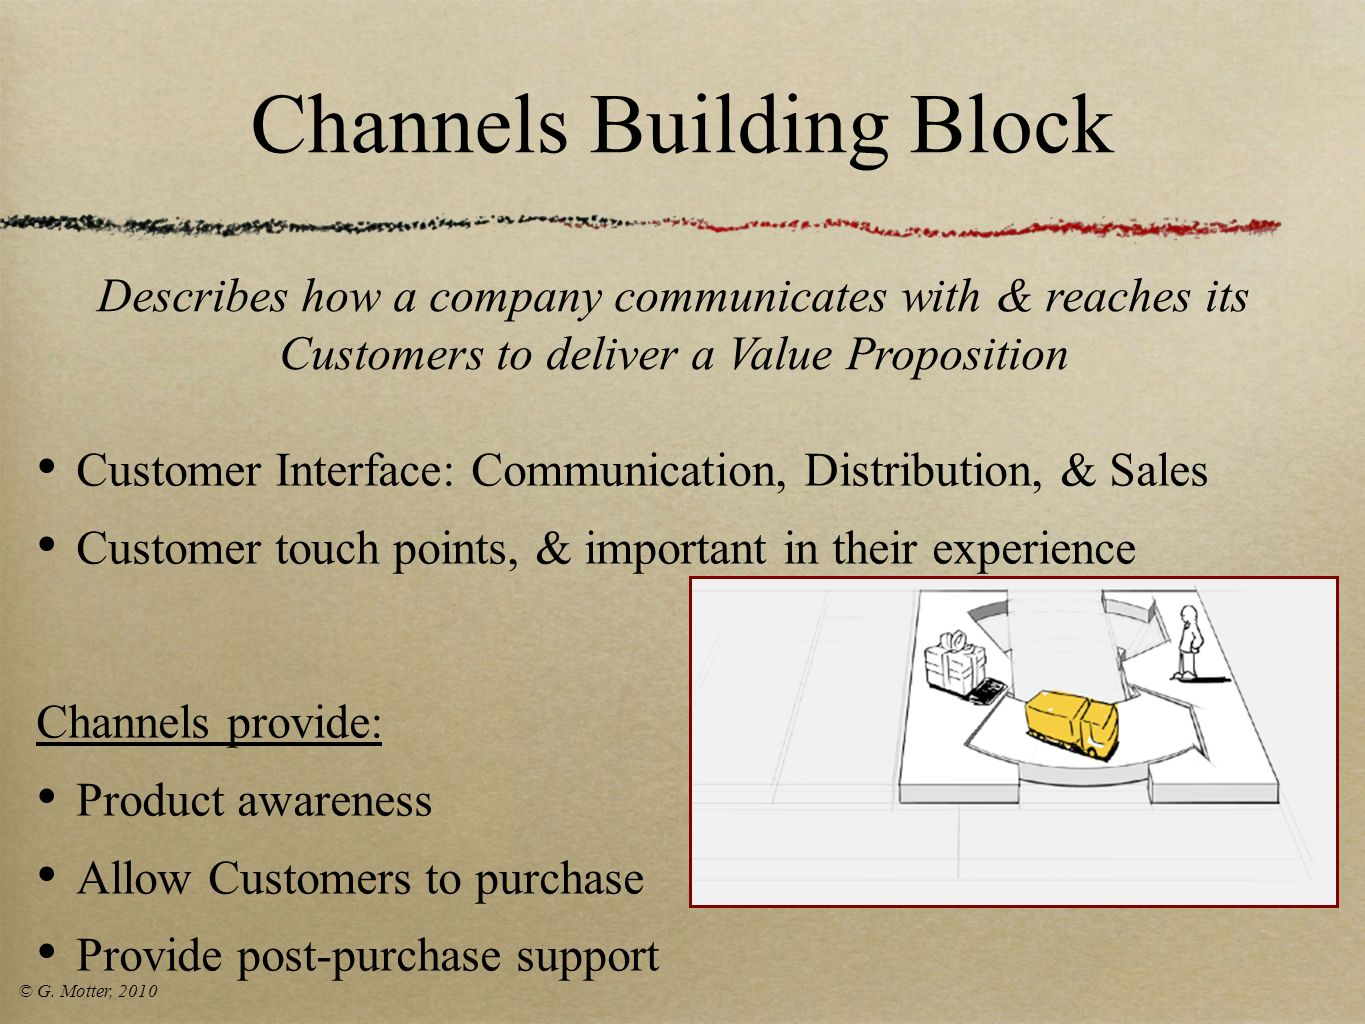 Channels Building Block